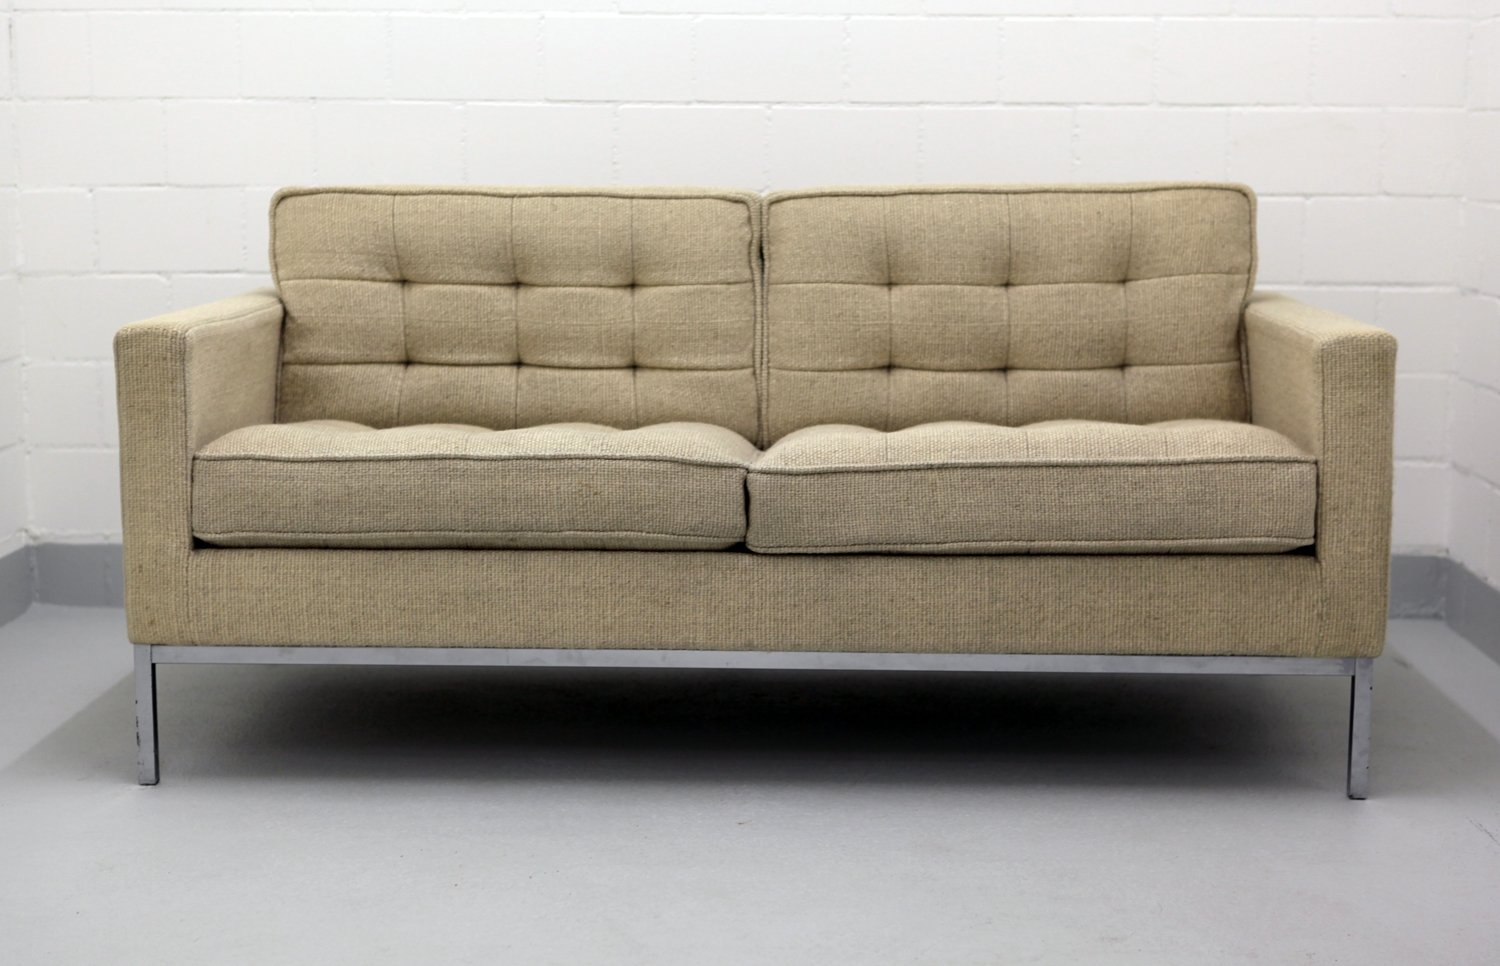 Elegant Two Seater Chrome And Wool Sofa By Florence Knoll For Knoll, 1970s